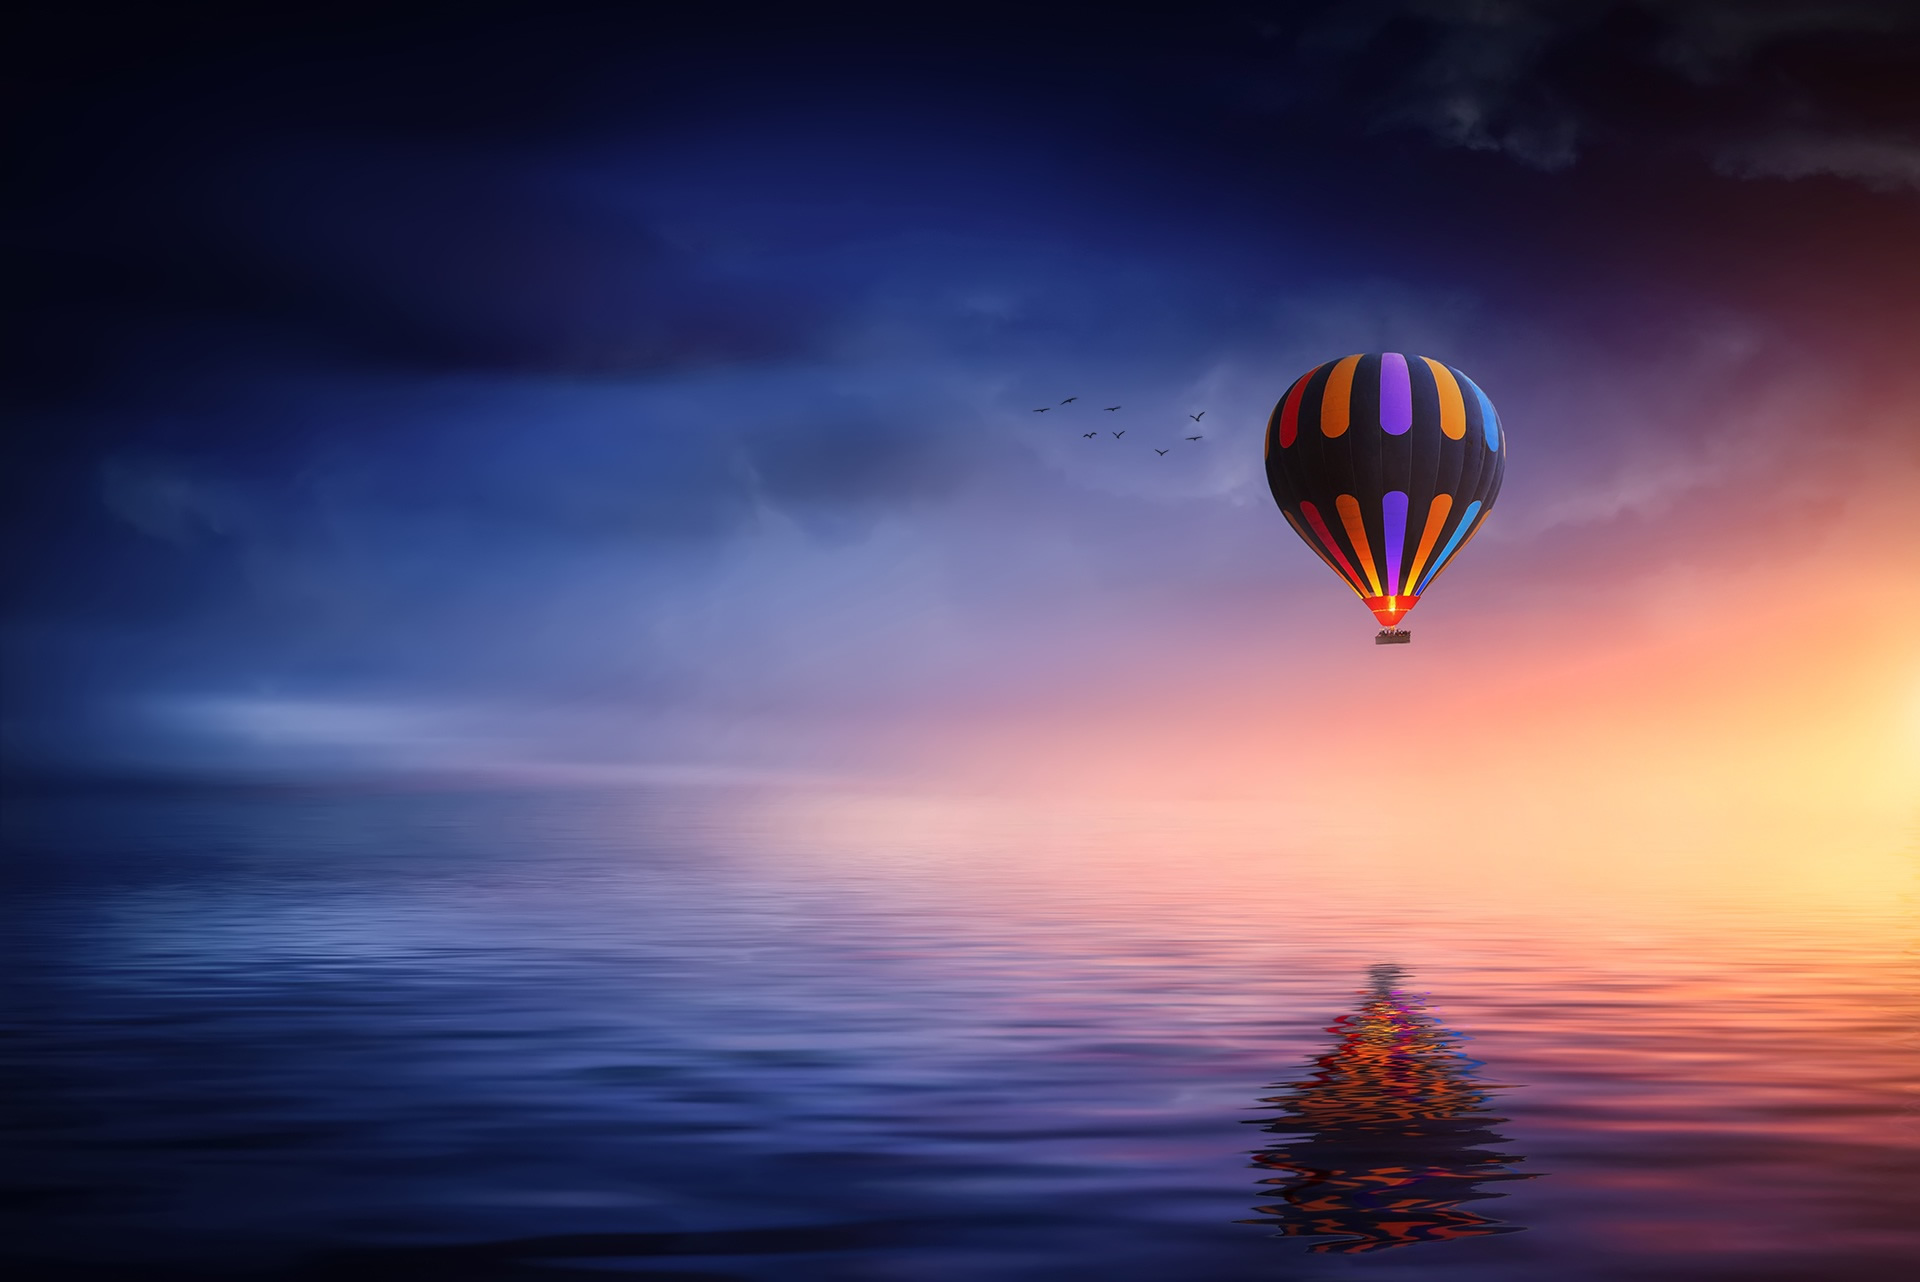 parachoute-laura-s-meeks-slider-background-balloon